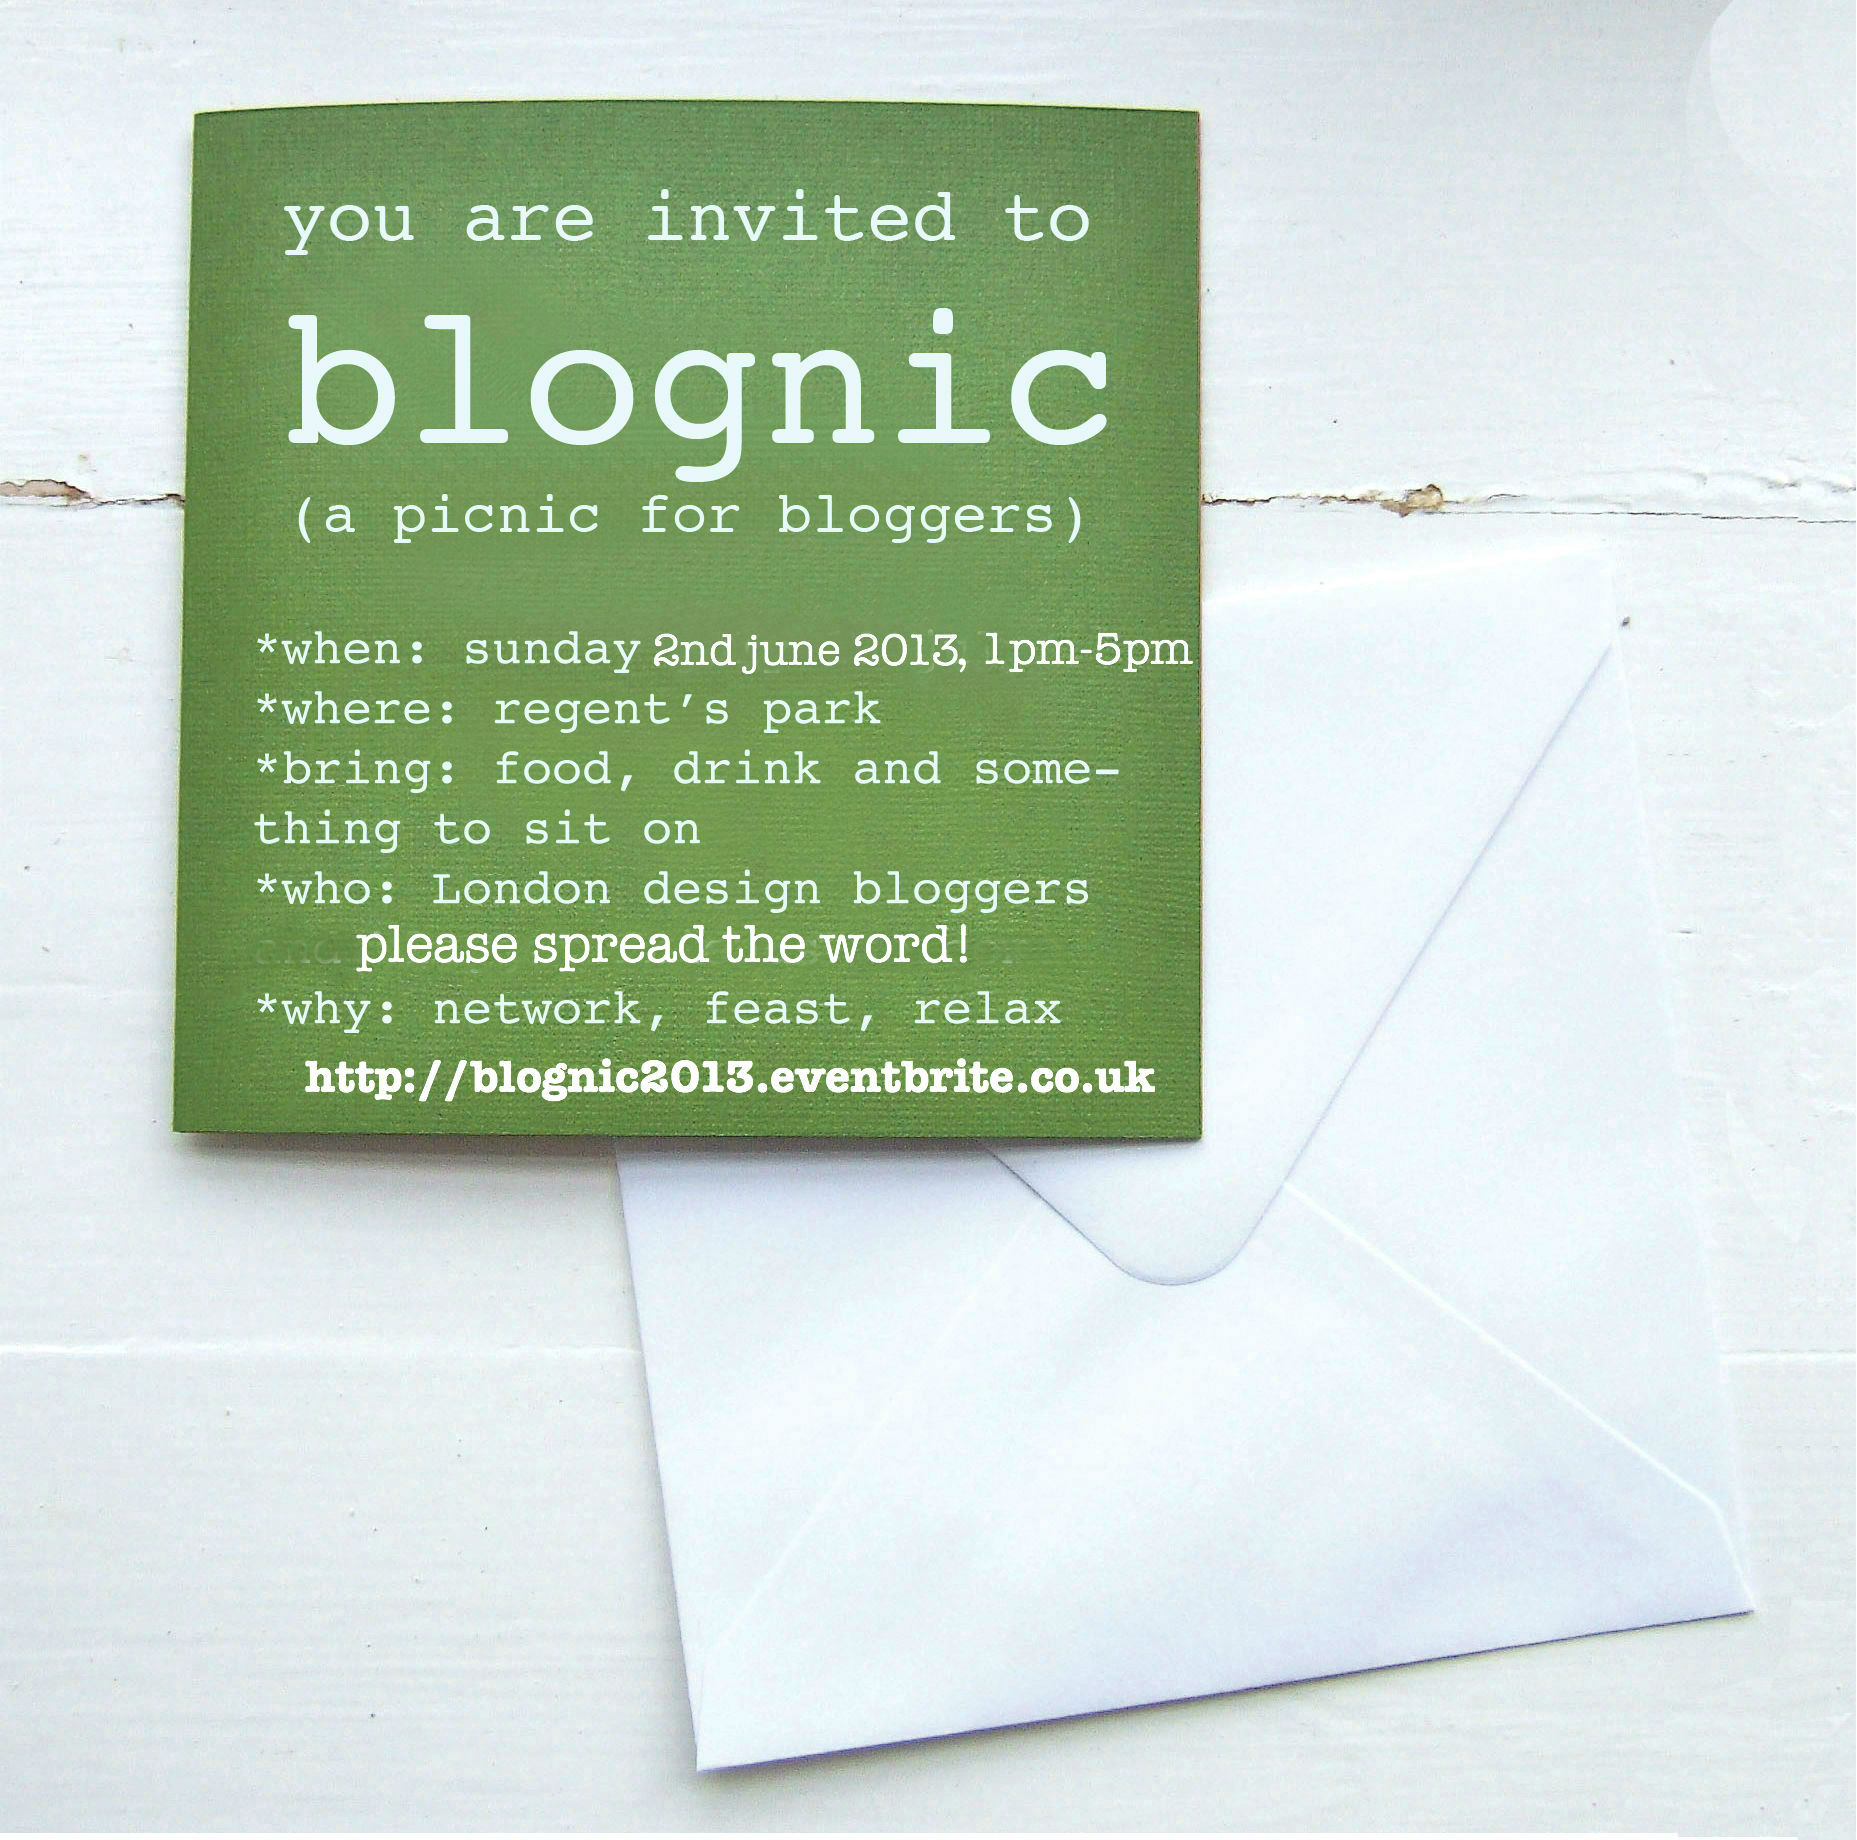 blognic invitation 2013